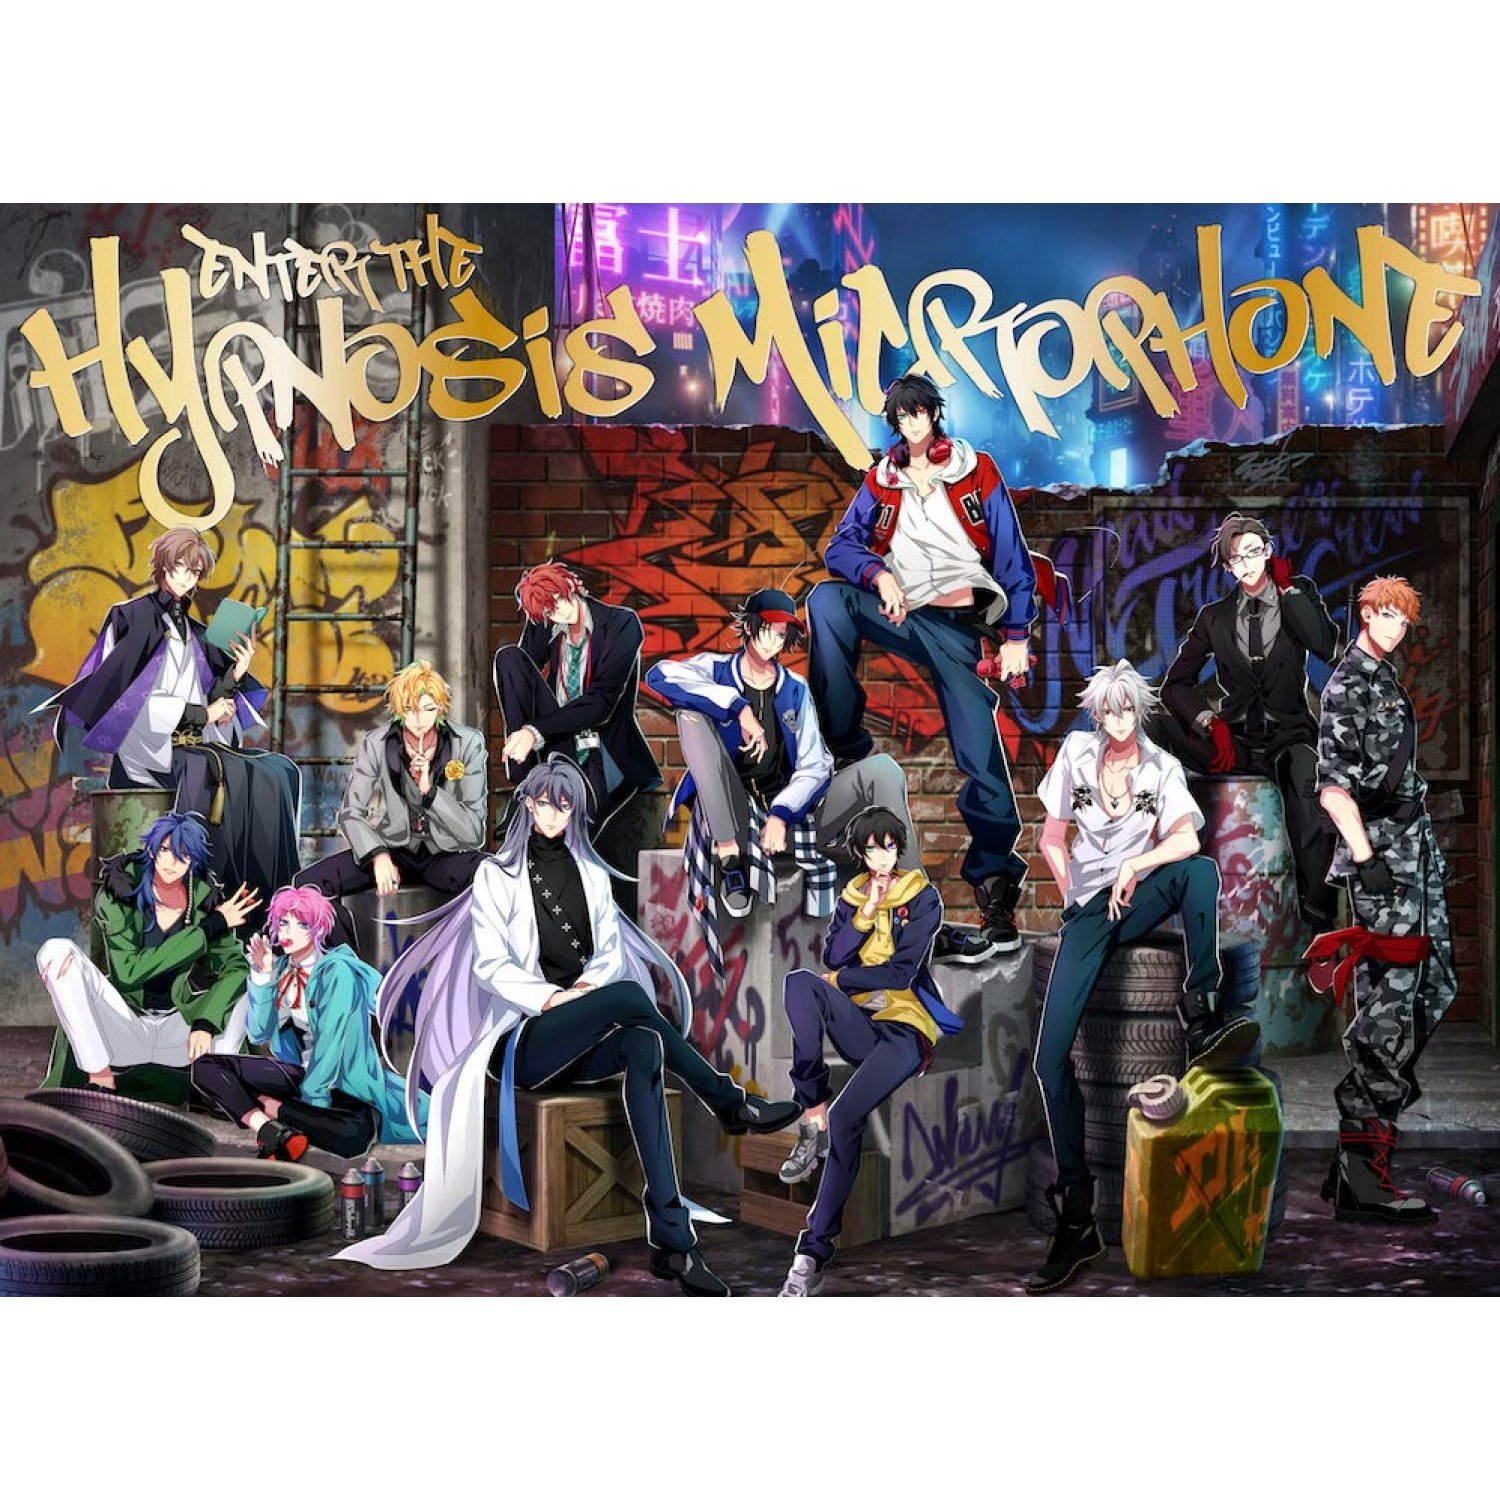 Hypnosis Mic Division Rap Battle 1st Full Album - Enter The Hypnosis  Microphone [Limited Edition]